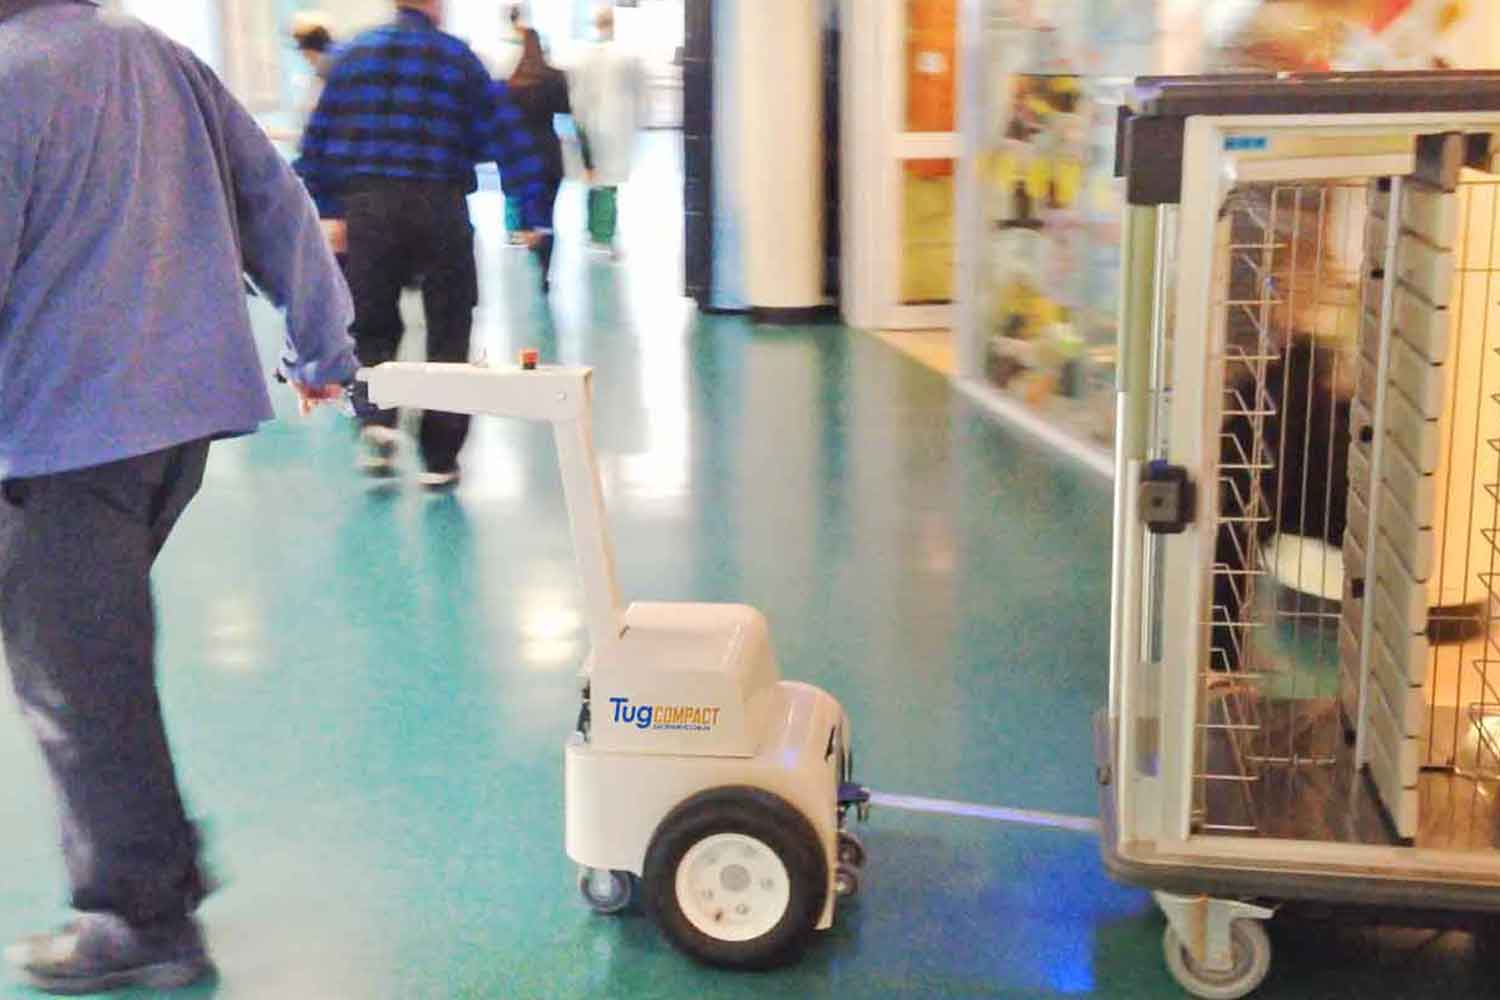 The Tug Compact towing a meal delivery trolley in a hospital